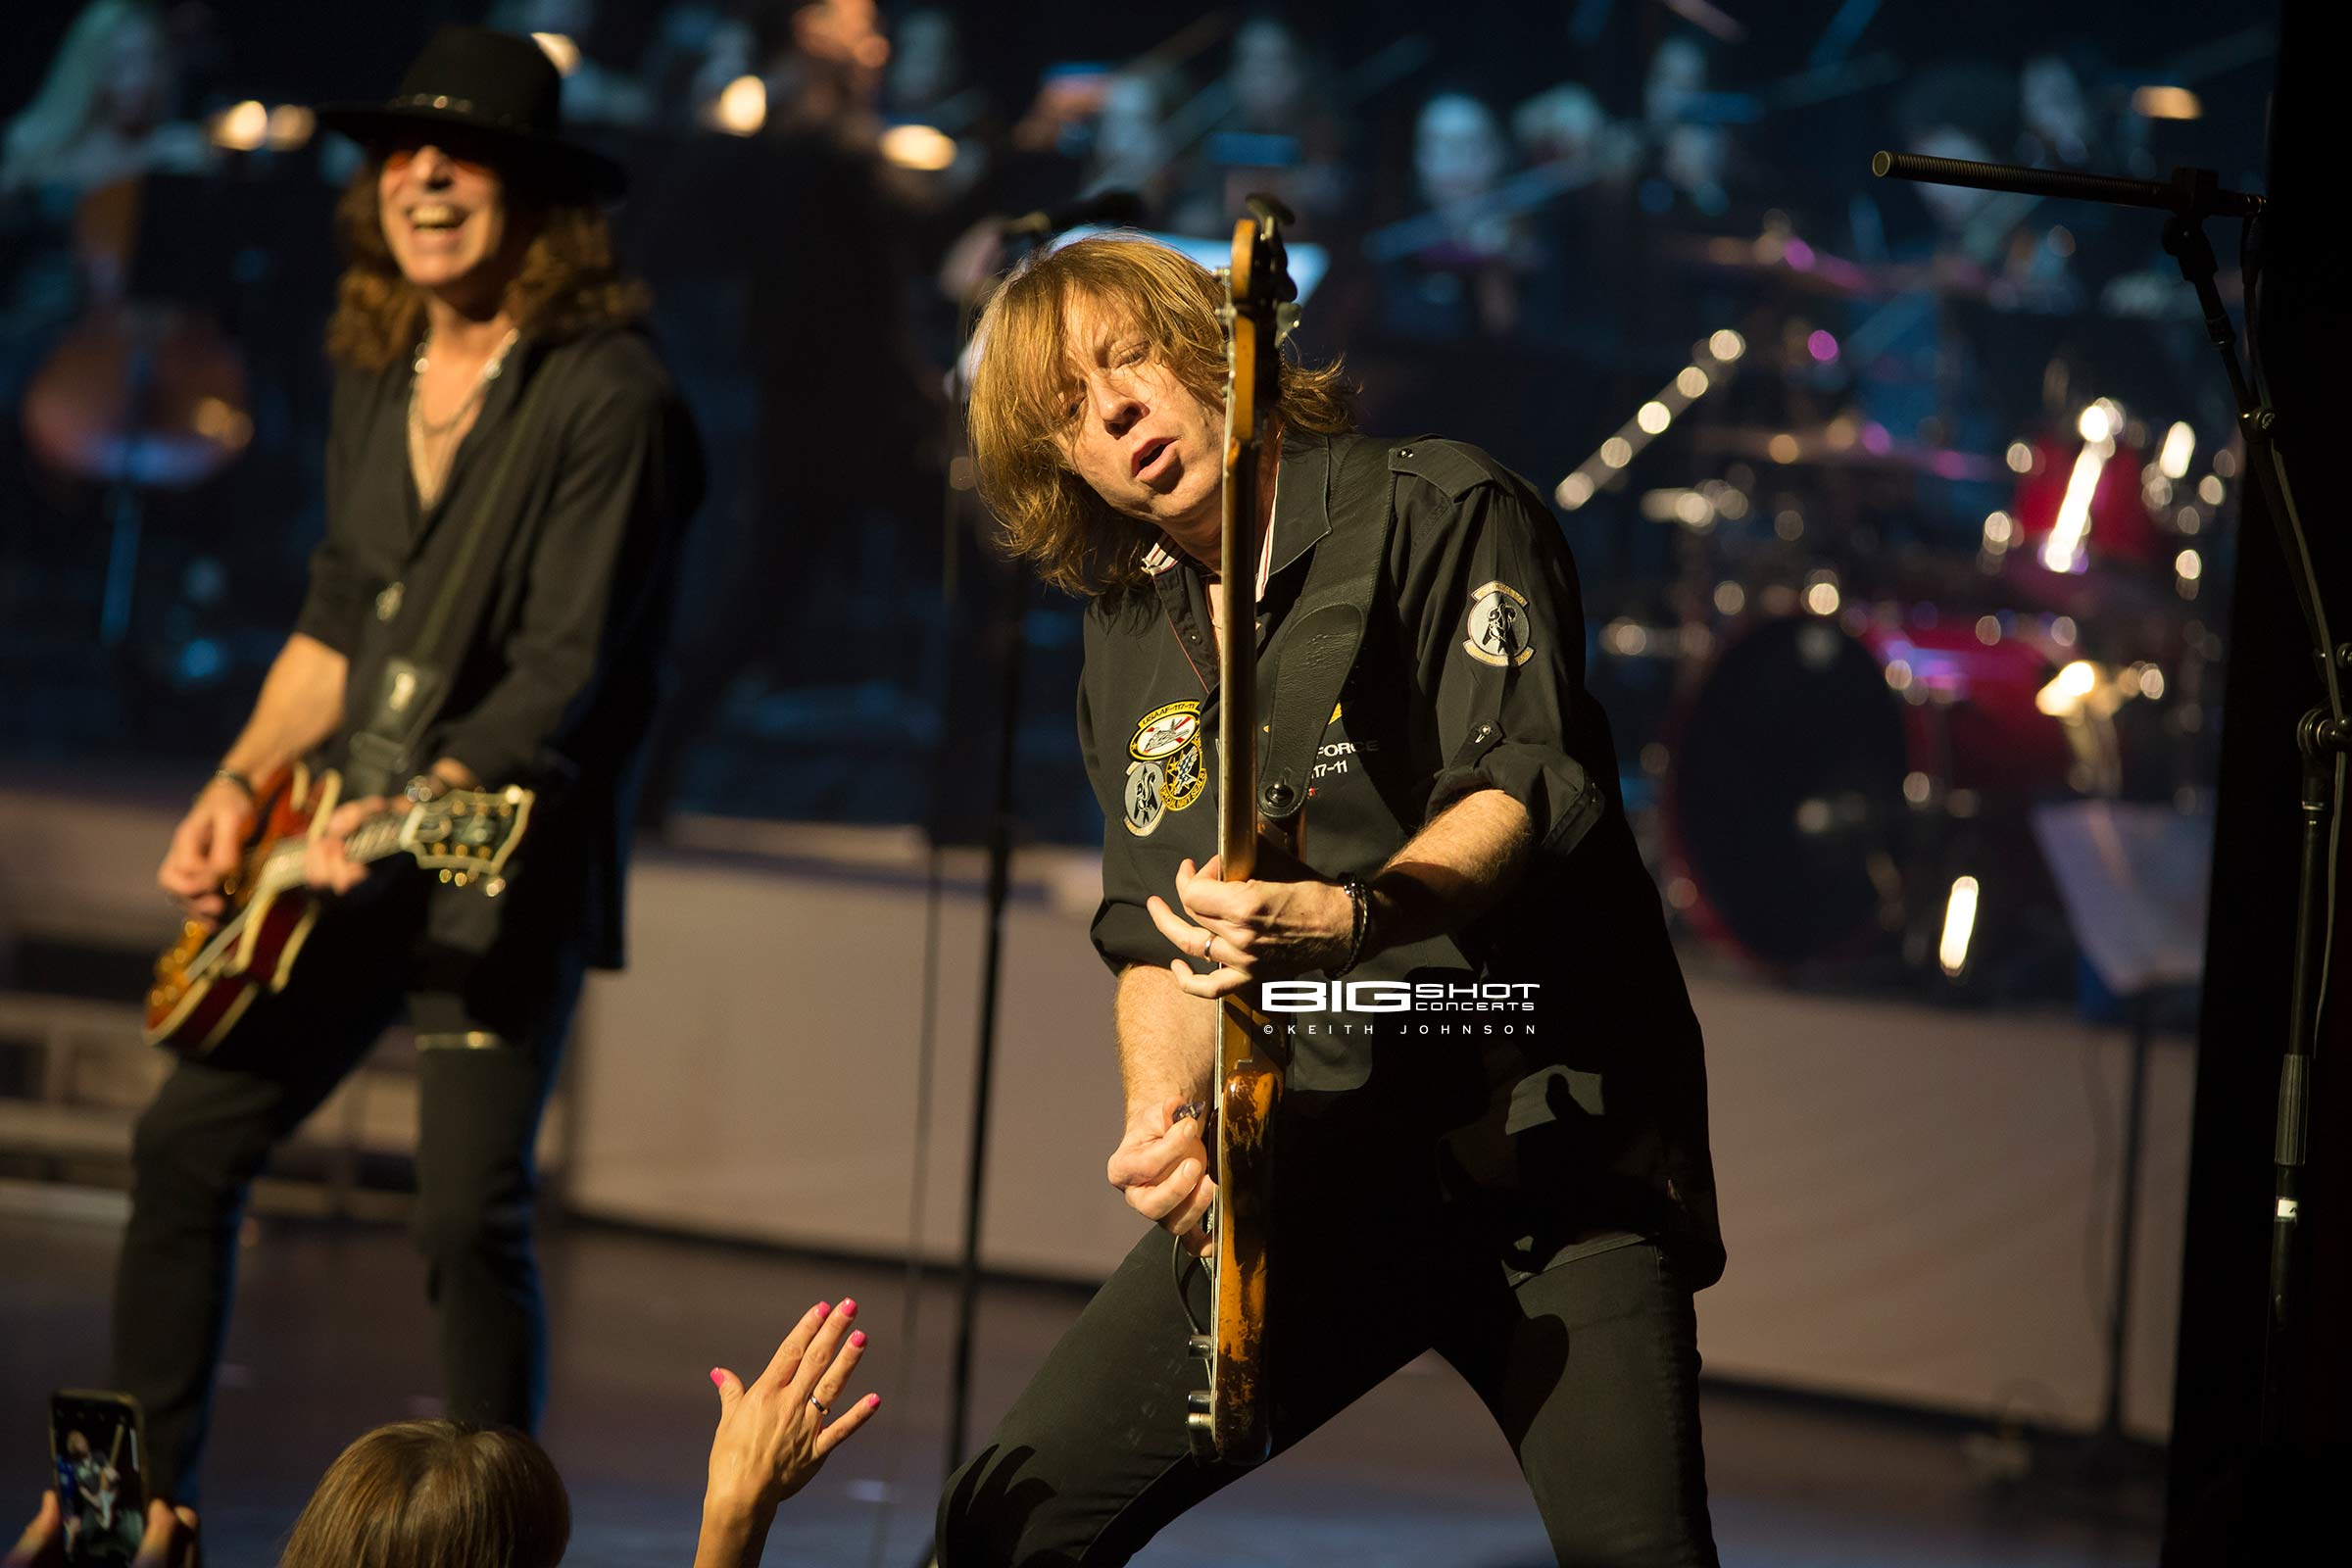 Tom Gimbel and Jeff Pilson of Foreigner